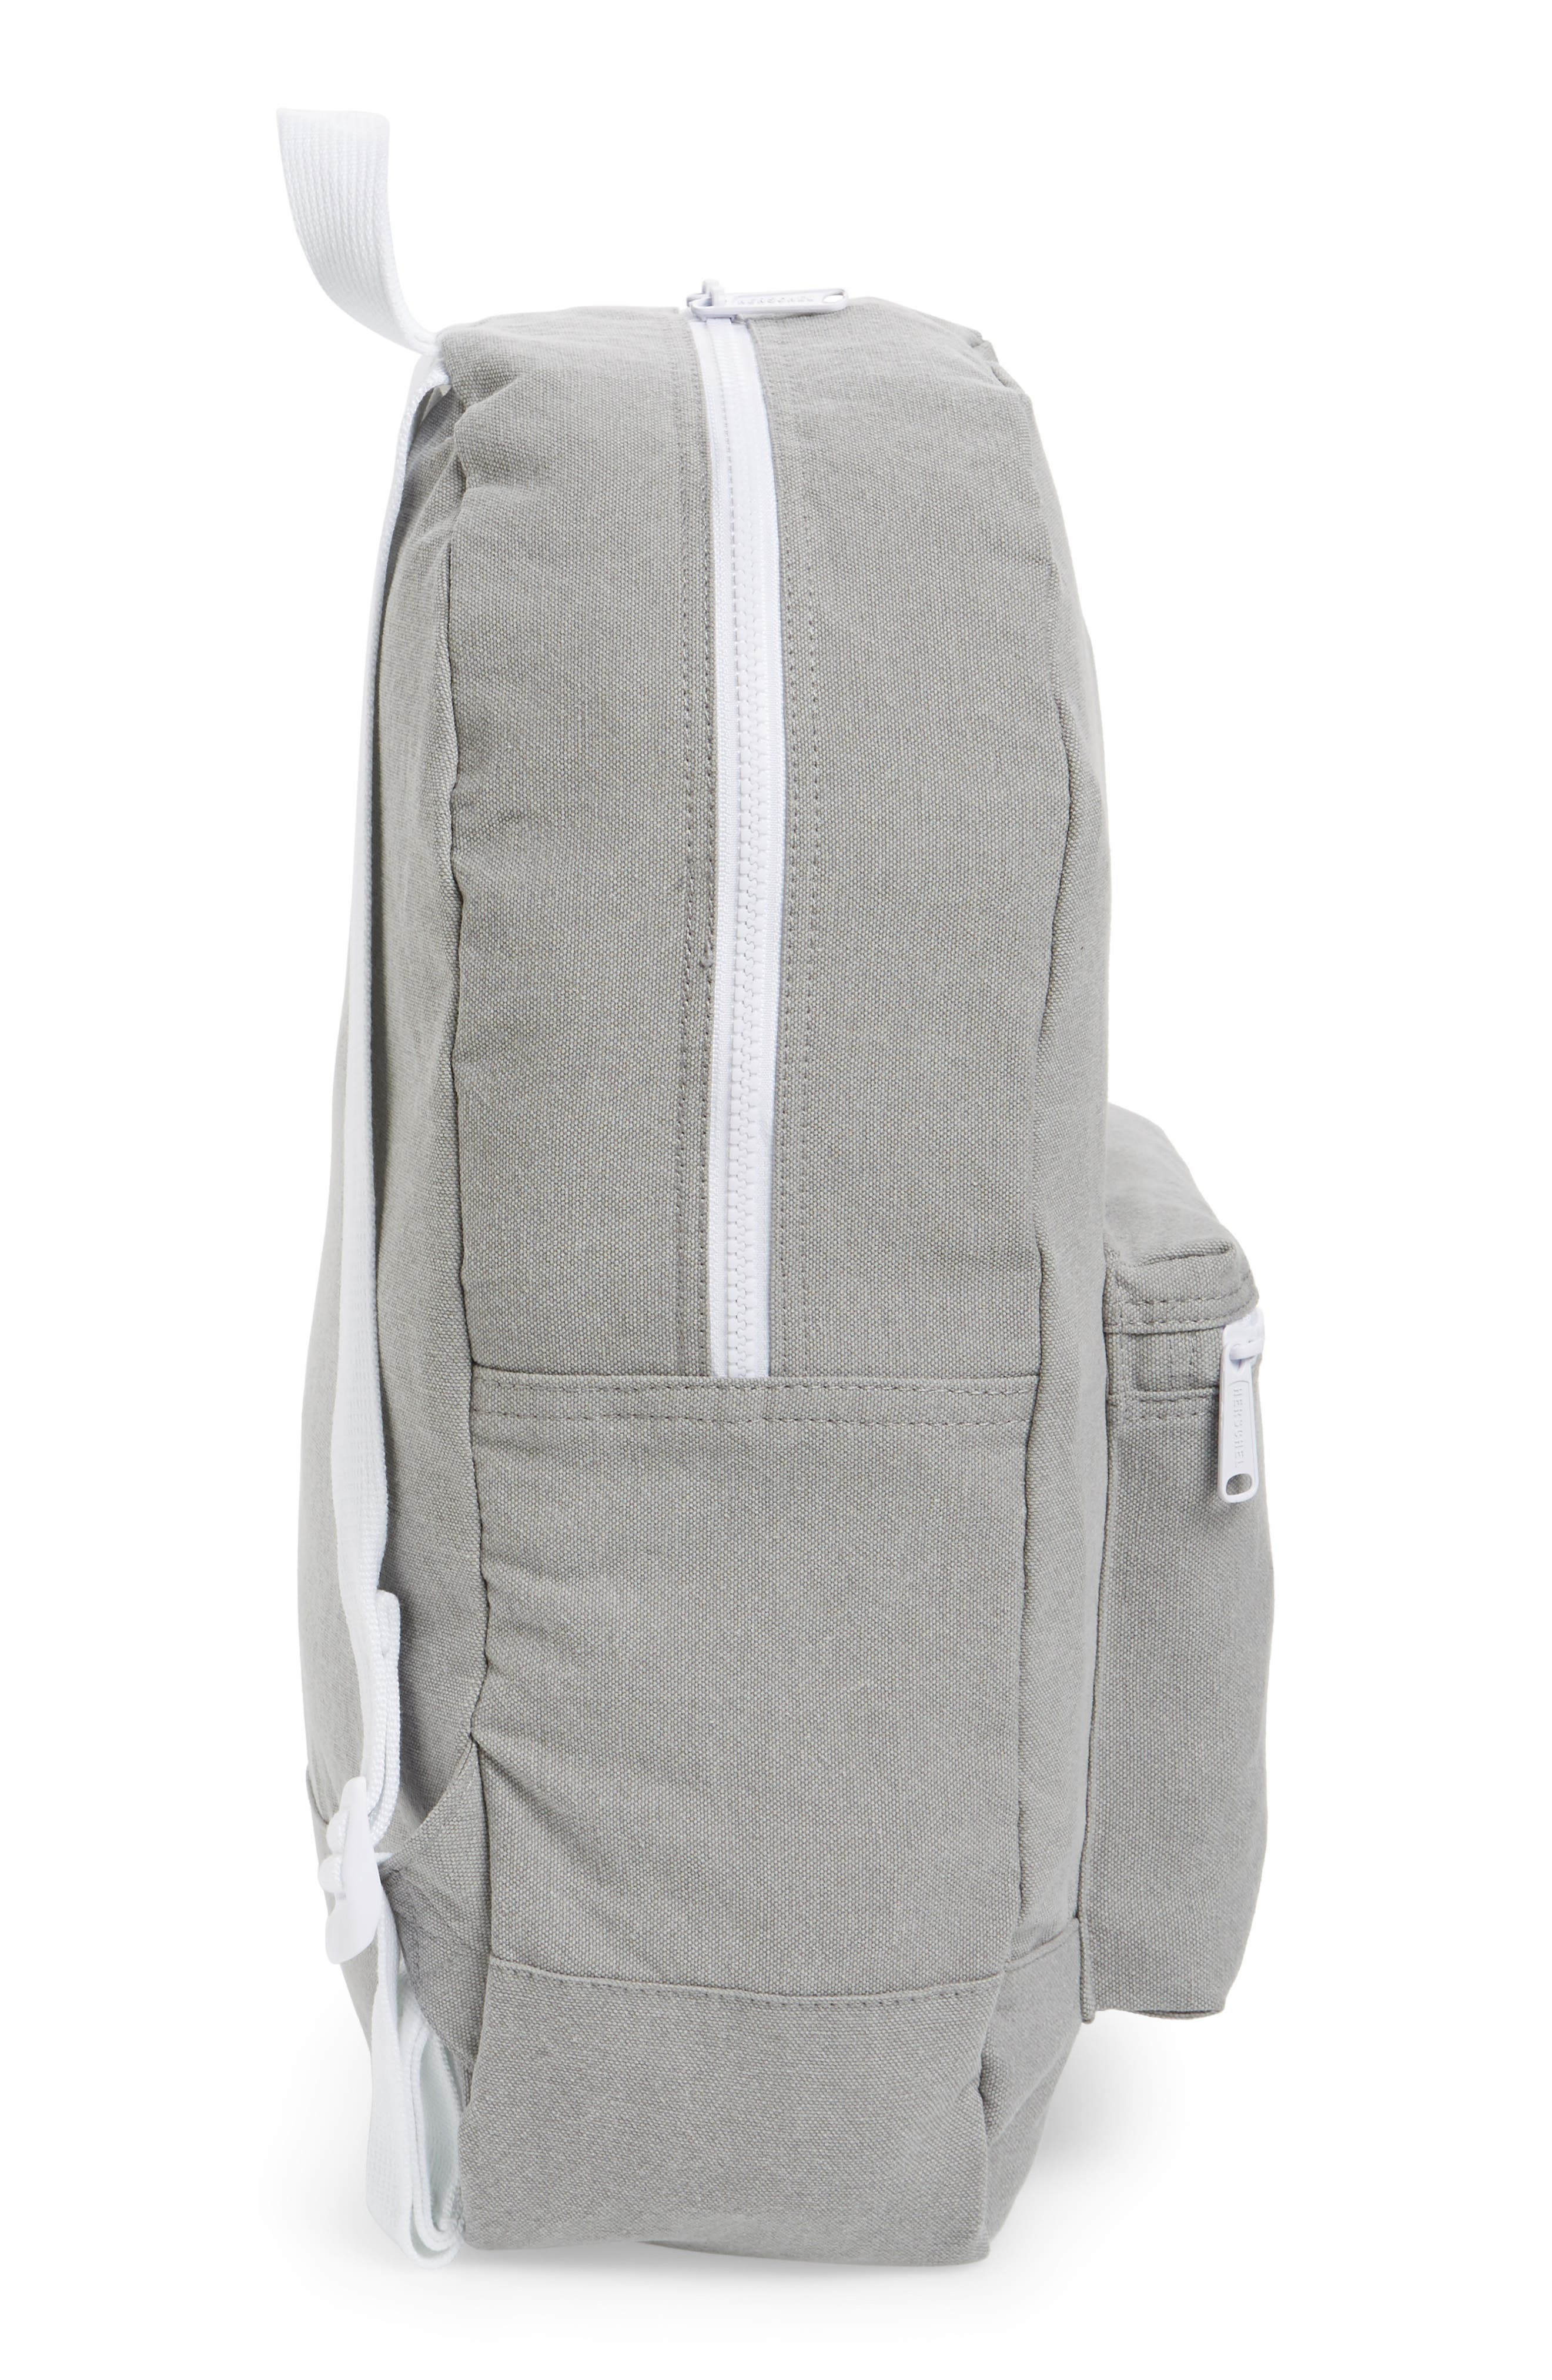 Cotton Casuals Daypack Backpack,                             Alternate thumbnail 41, color,